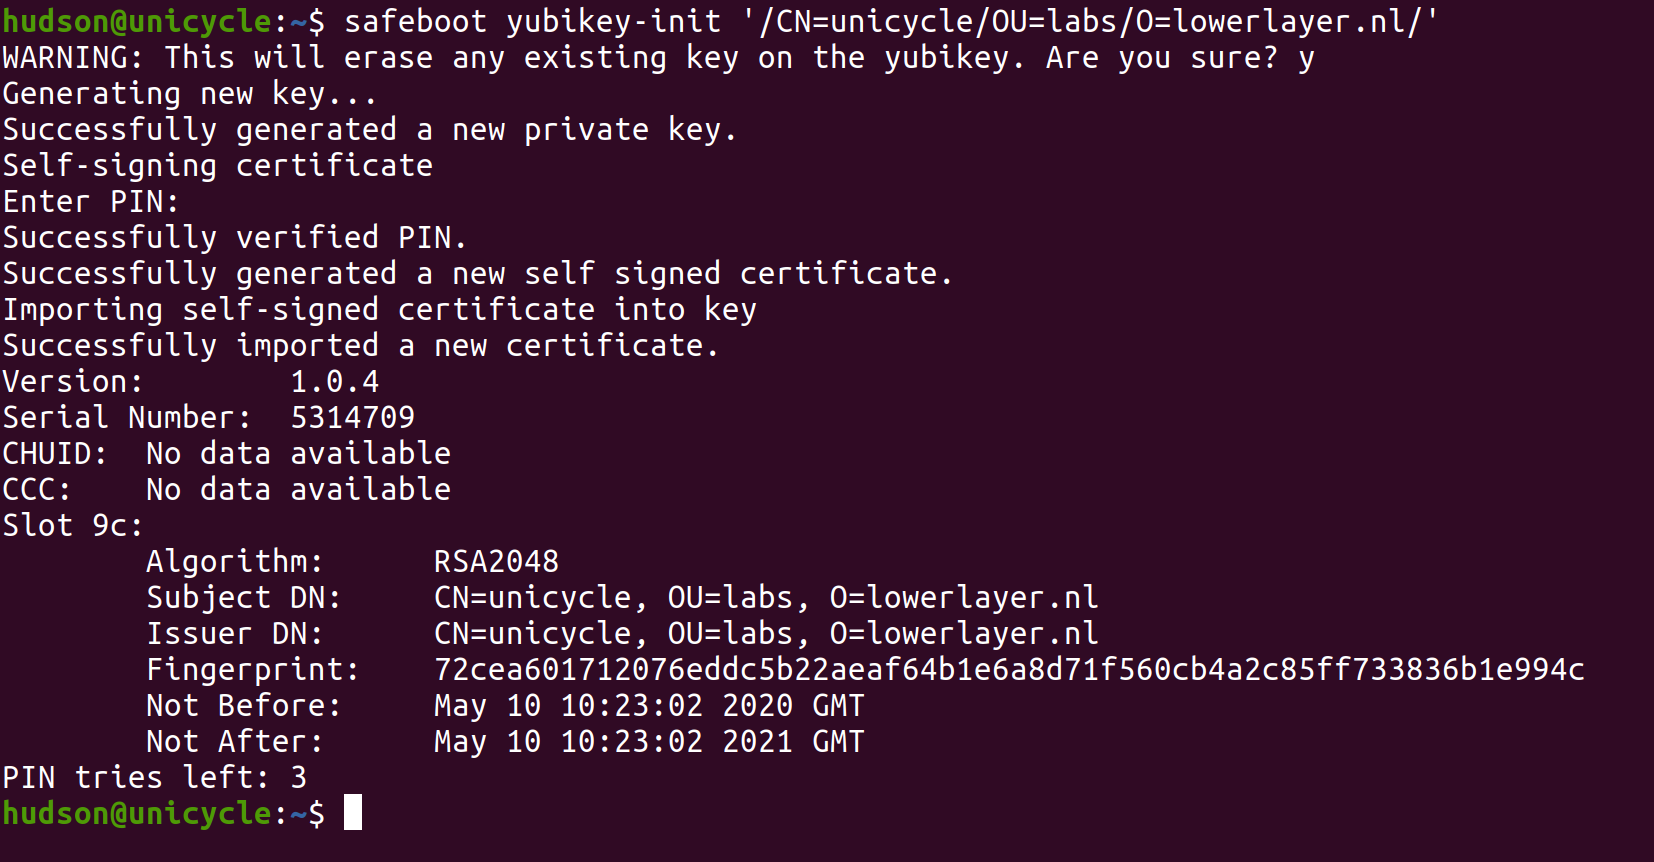 Output of yubikey-init command